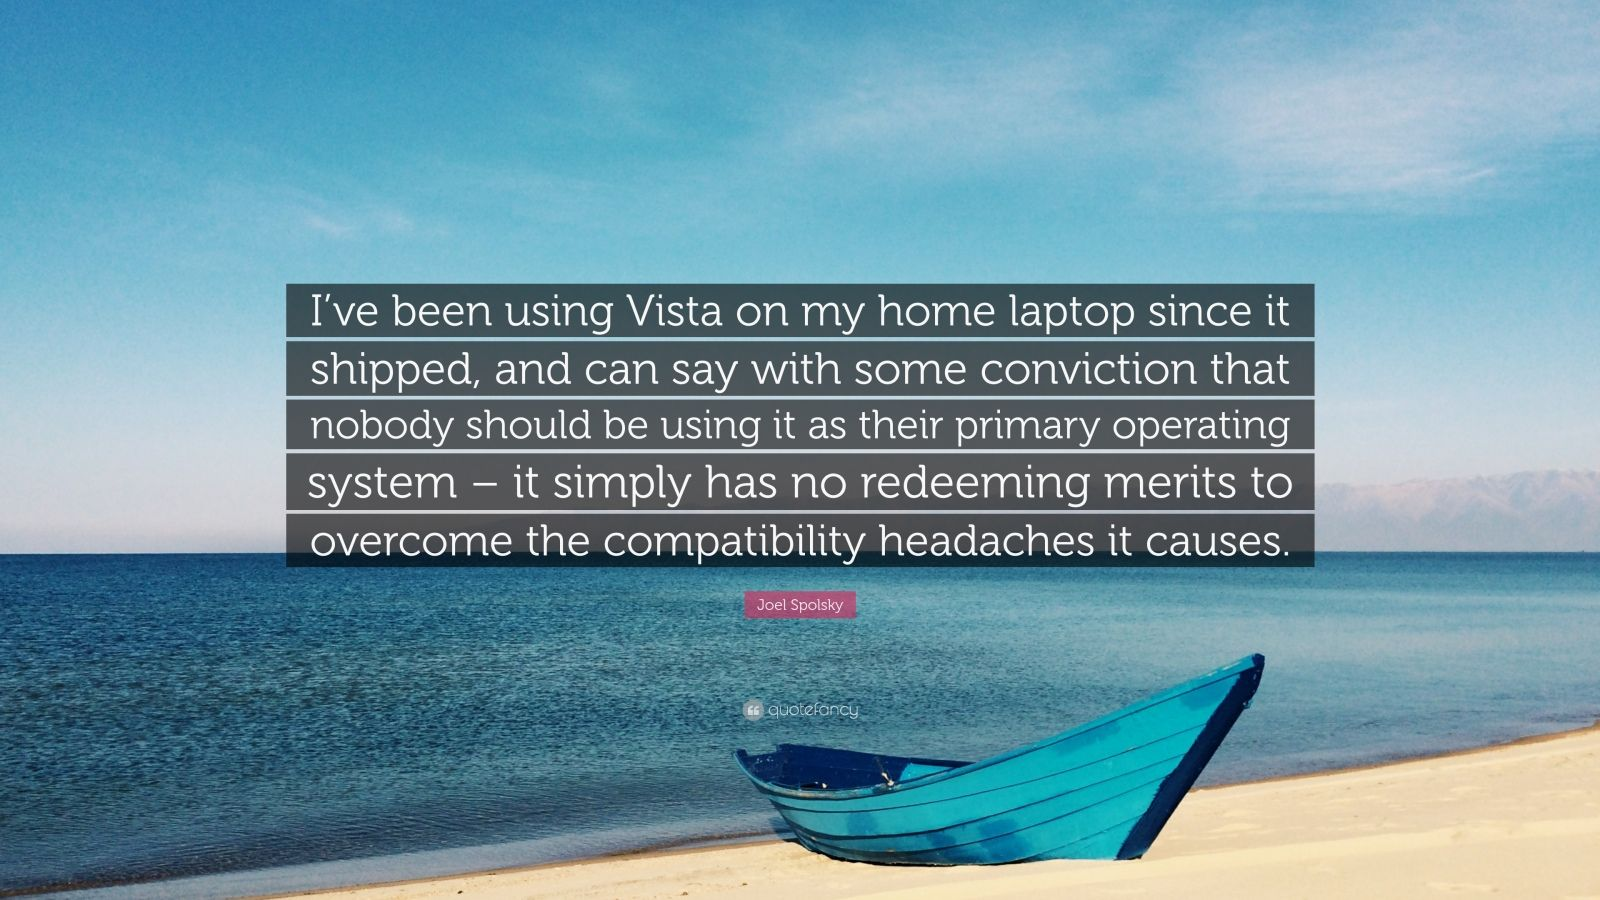 """Joel Spolsky Quote: """"I've been using Vista on my home laptop since it shipped, and can say with some conviction that nobody should be using it as their primary operating system – it simply has no redeeming merits to overcome the compatibility headaches it causes."""""""